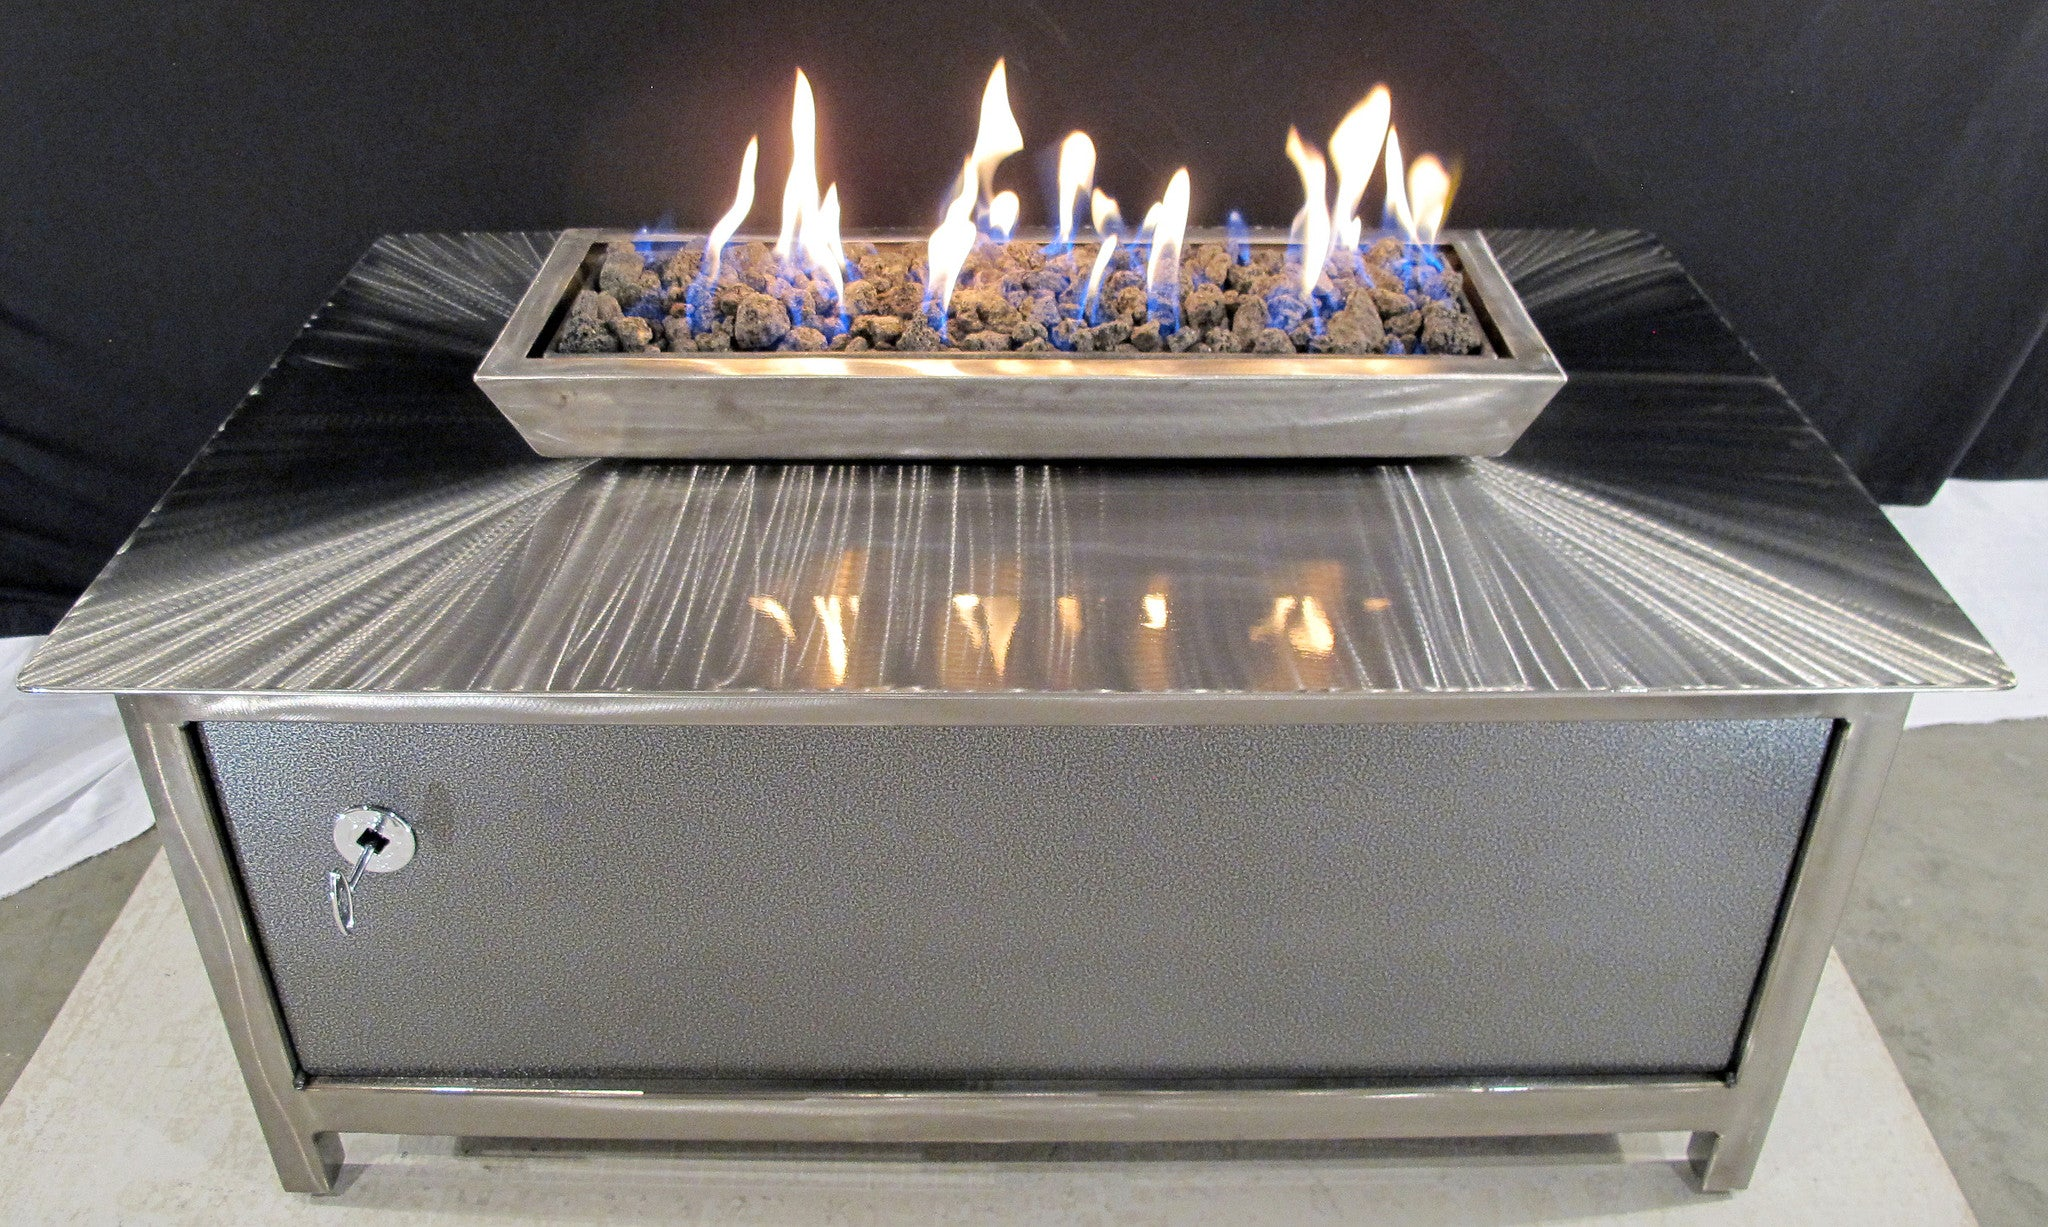 IMPACT Fire Table, Stainless Steel, Hand Brushed, Powder Coated Clear,  Rectangular,